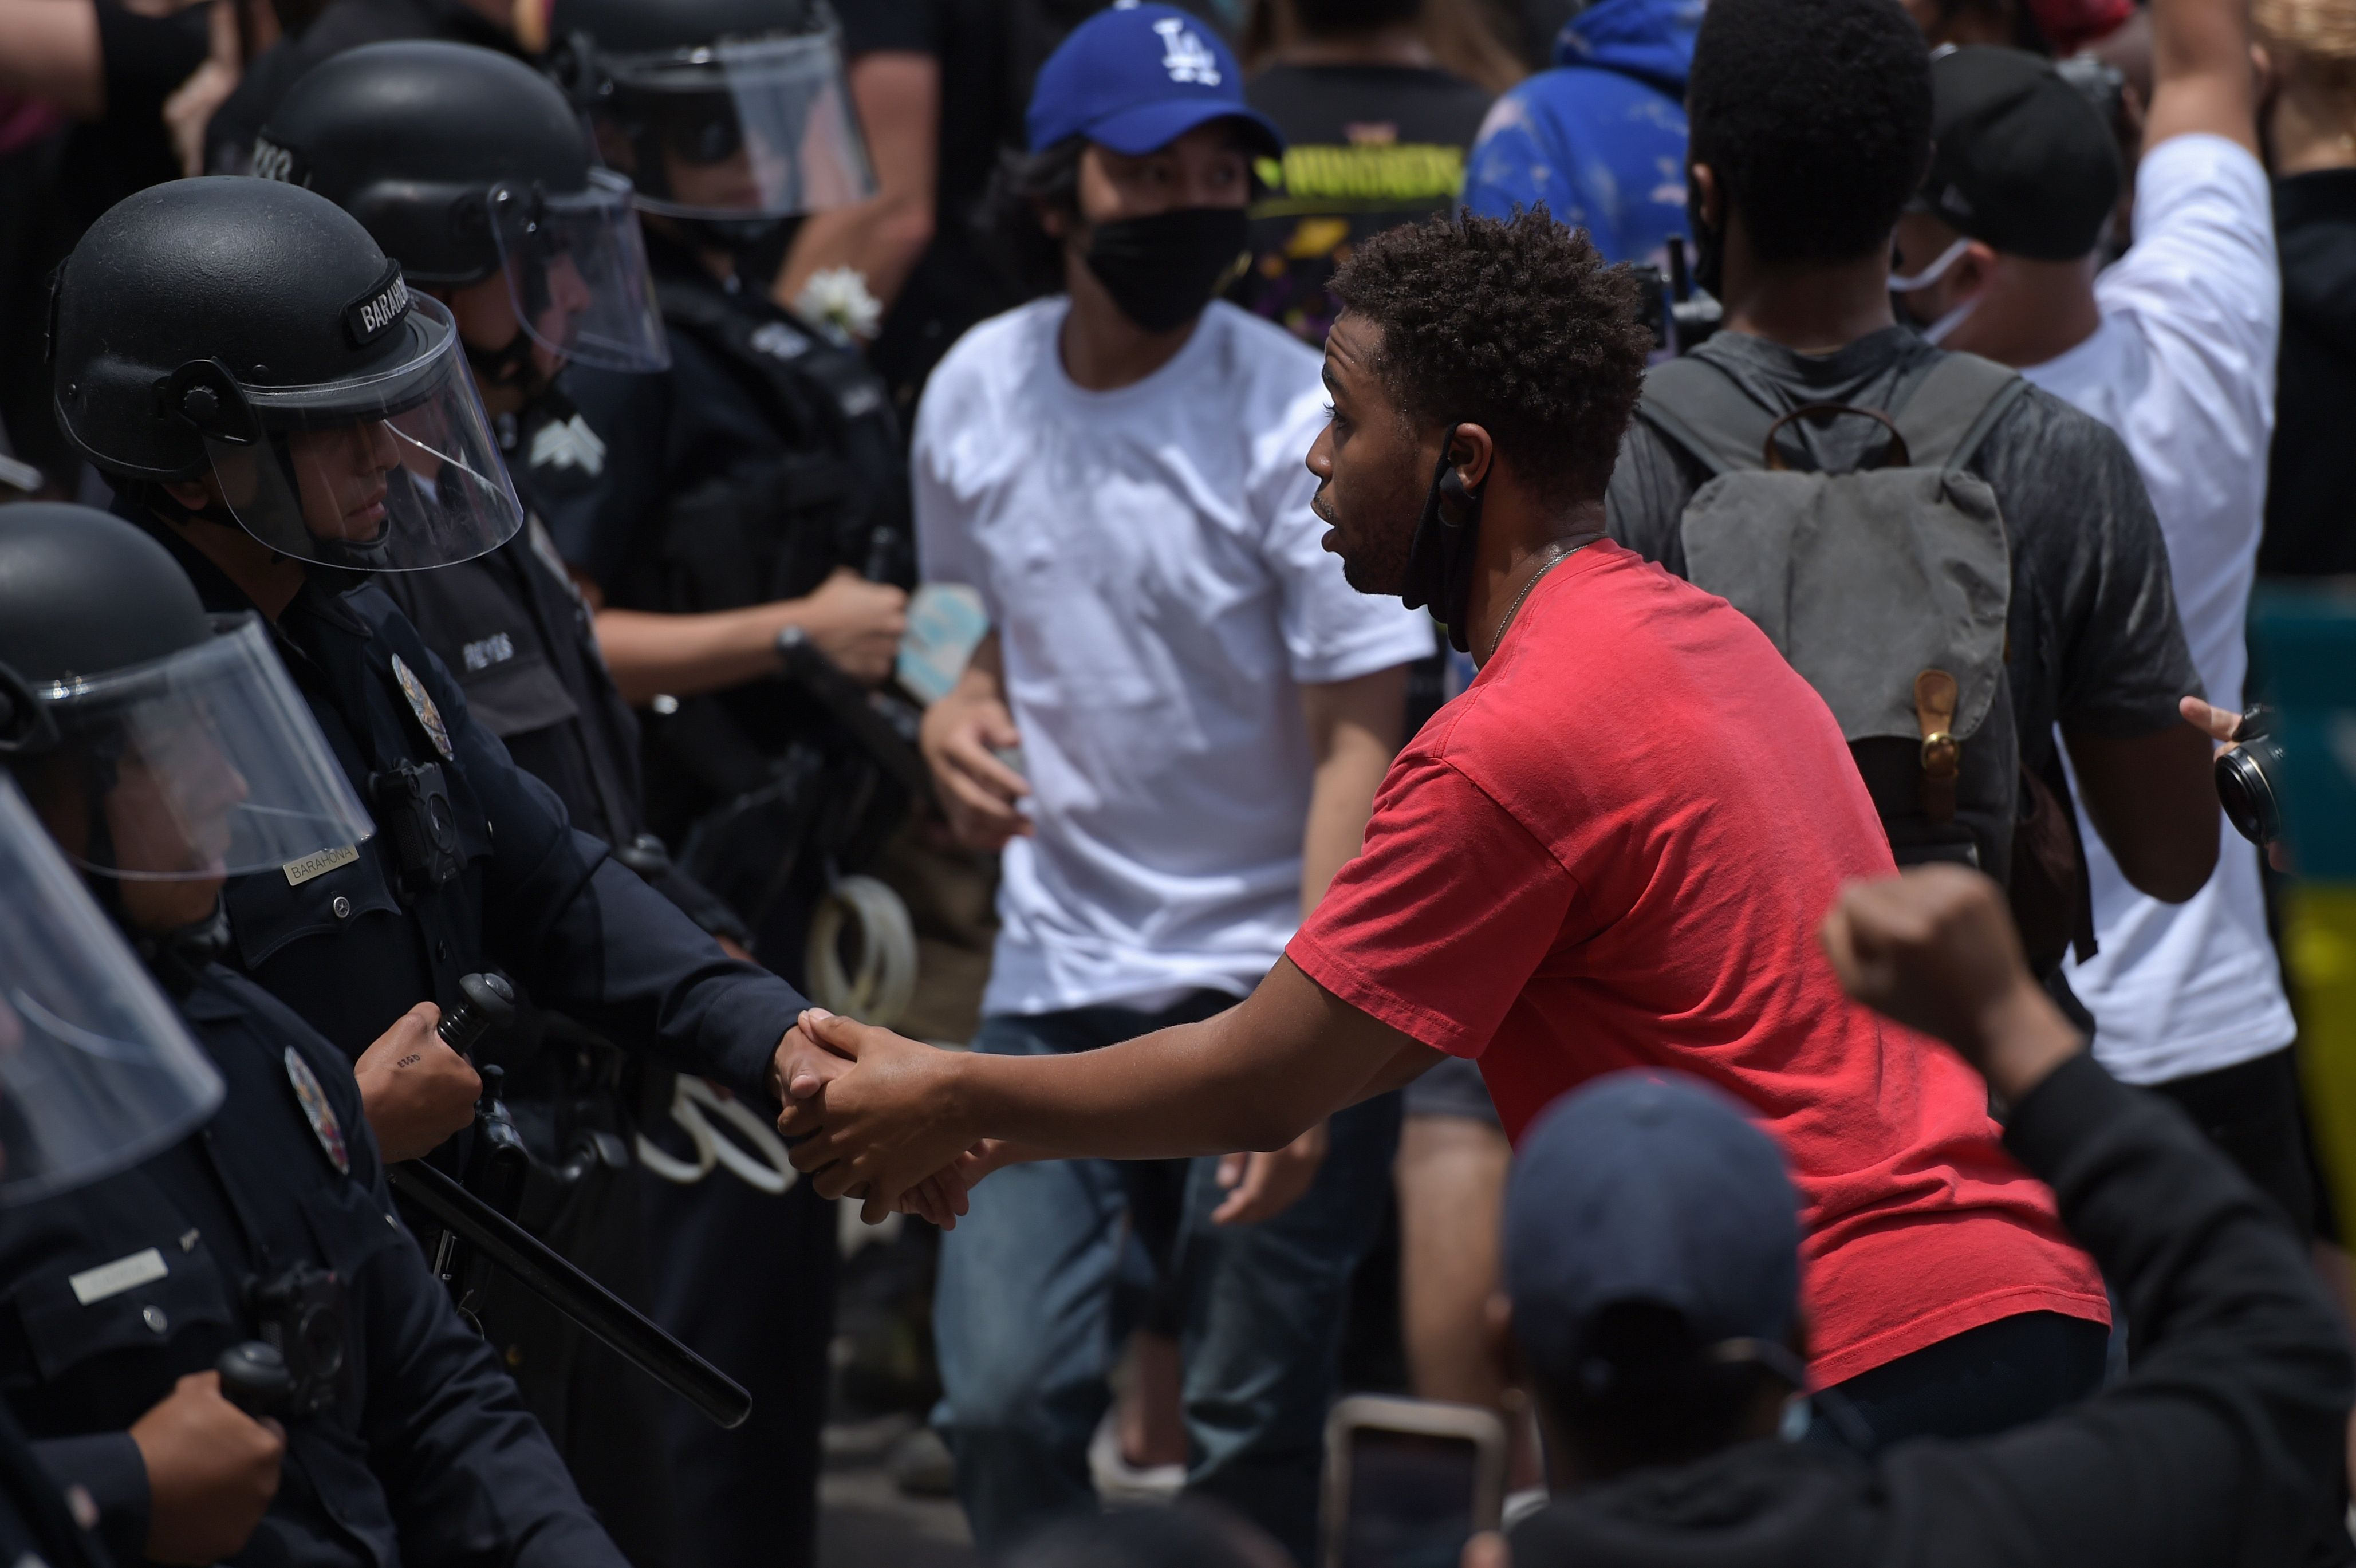 A protester shakes hands with an LAPD officer during a demonstration over the death of George Floyd in Hollywood, California on June 2, 2020. (Photo: Agustin Paullier/AFP via Getty Images)